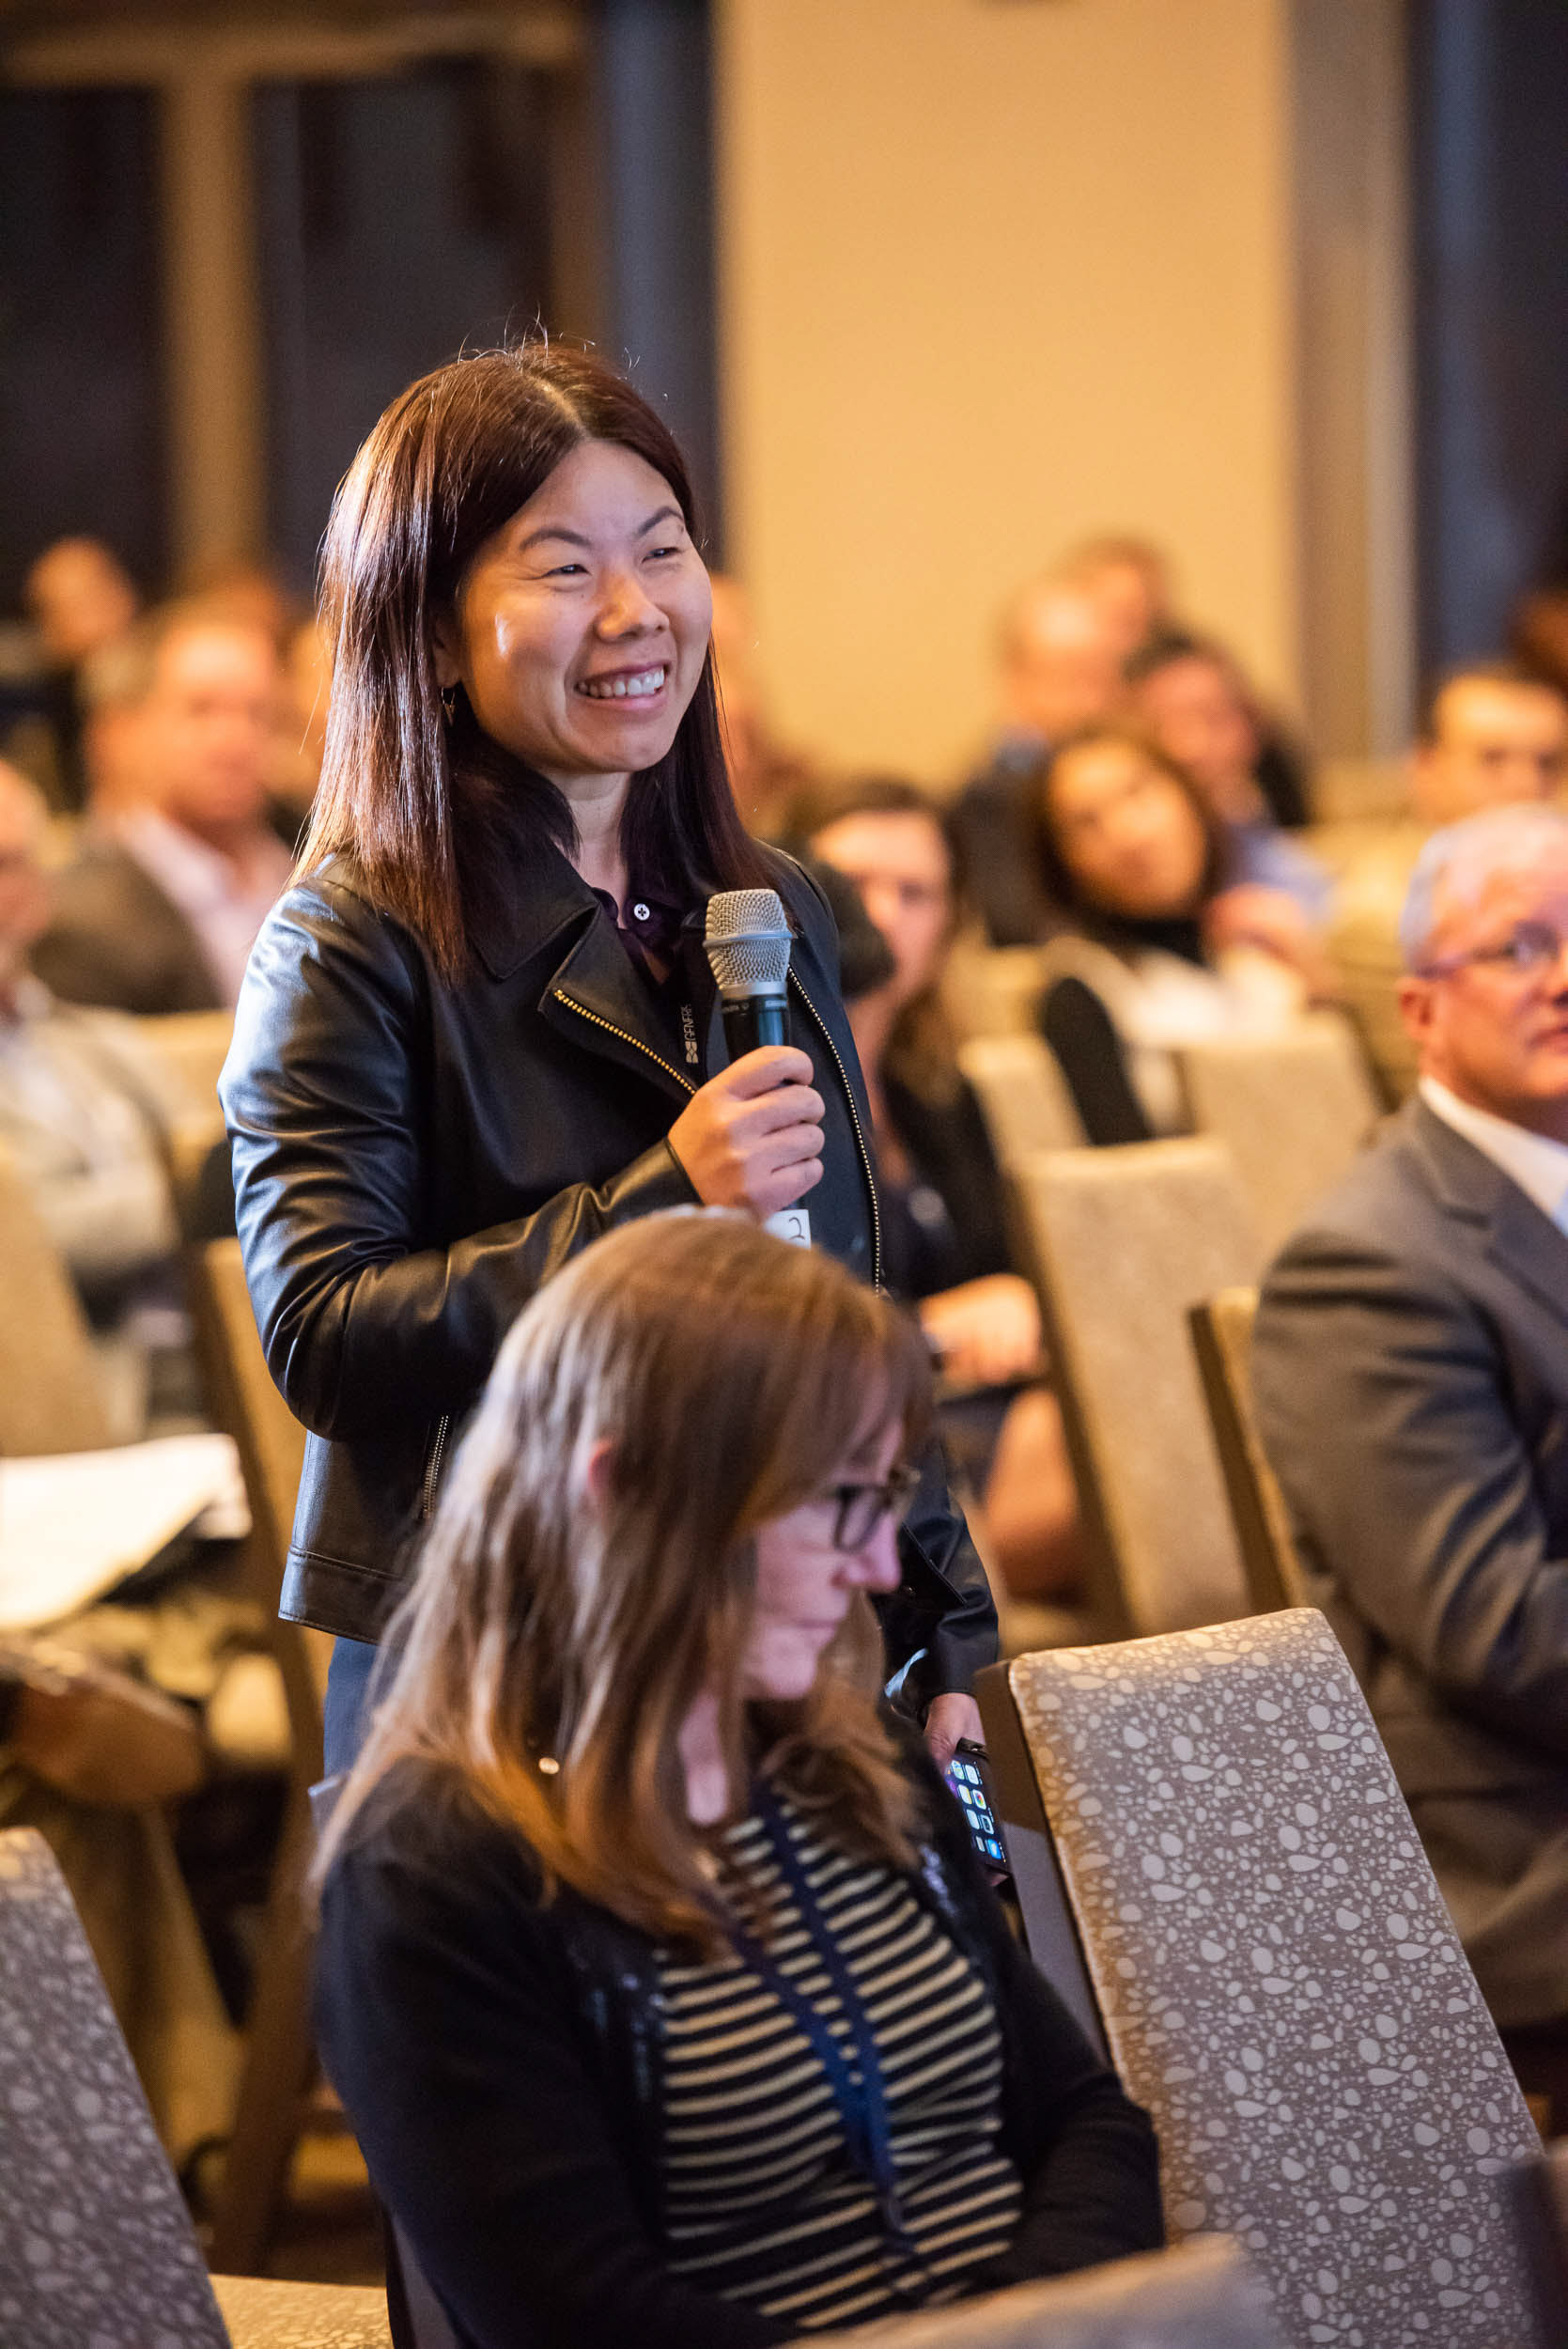 181024 - American Medical Device Summit - mark campbell photography-321_Resized_Resized.jpg